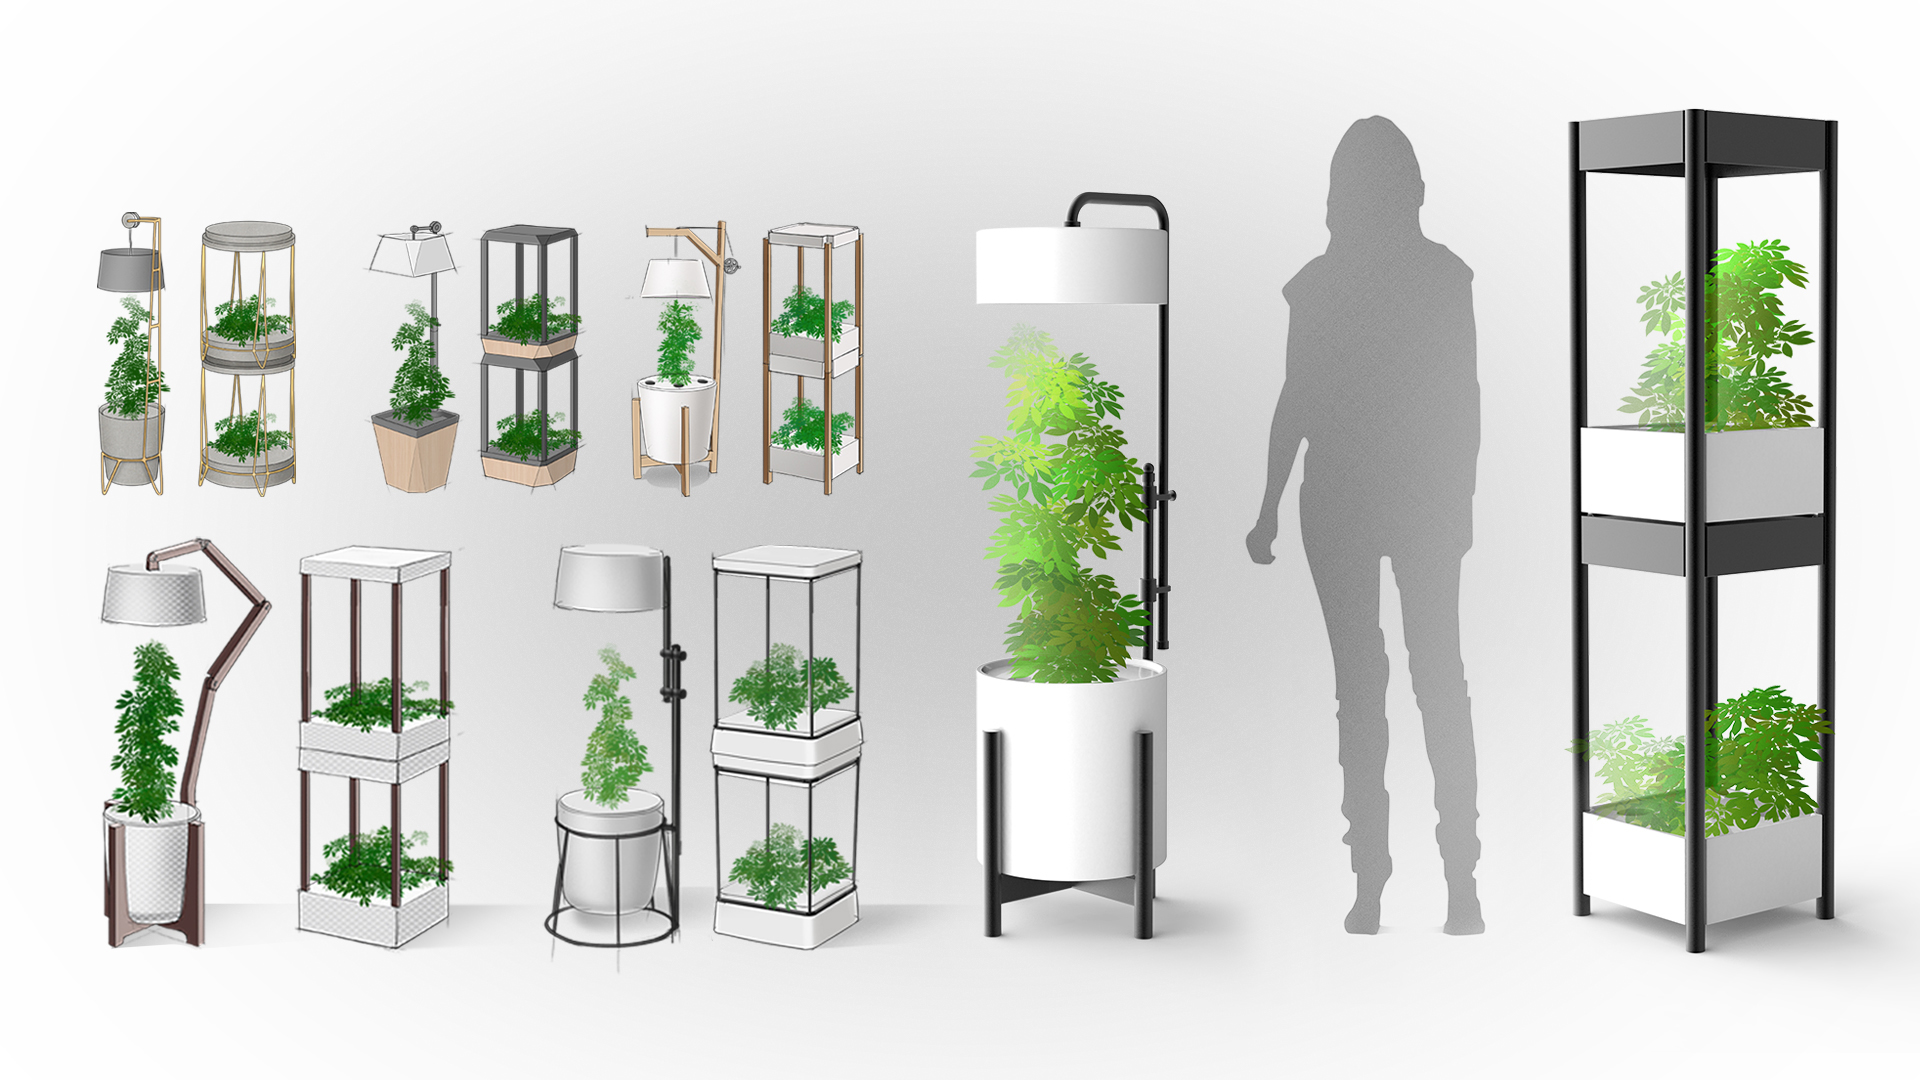 prioritydesigns_miracle-gro_indoor-growing_design_sketchpage-design-ideation